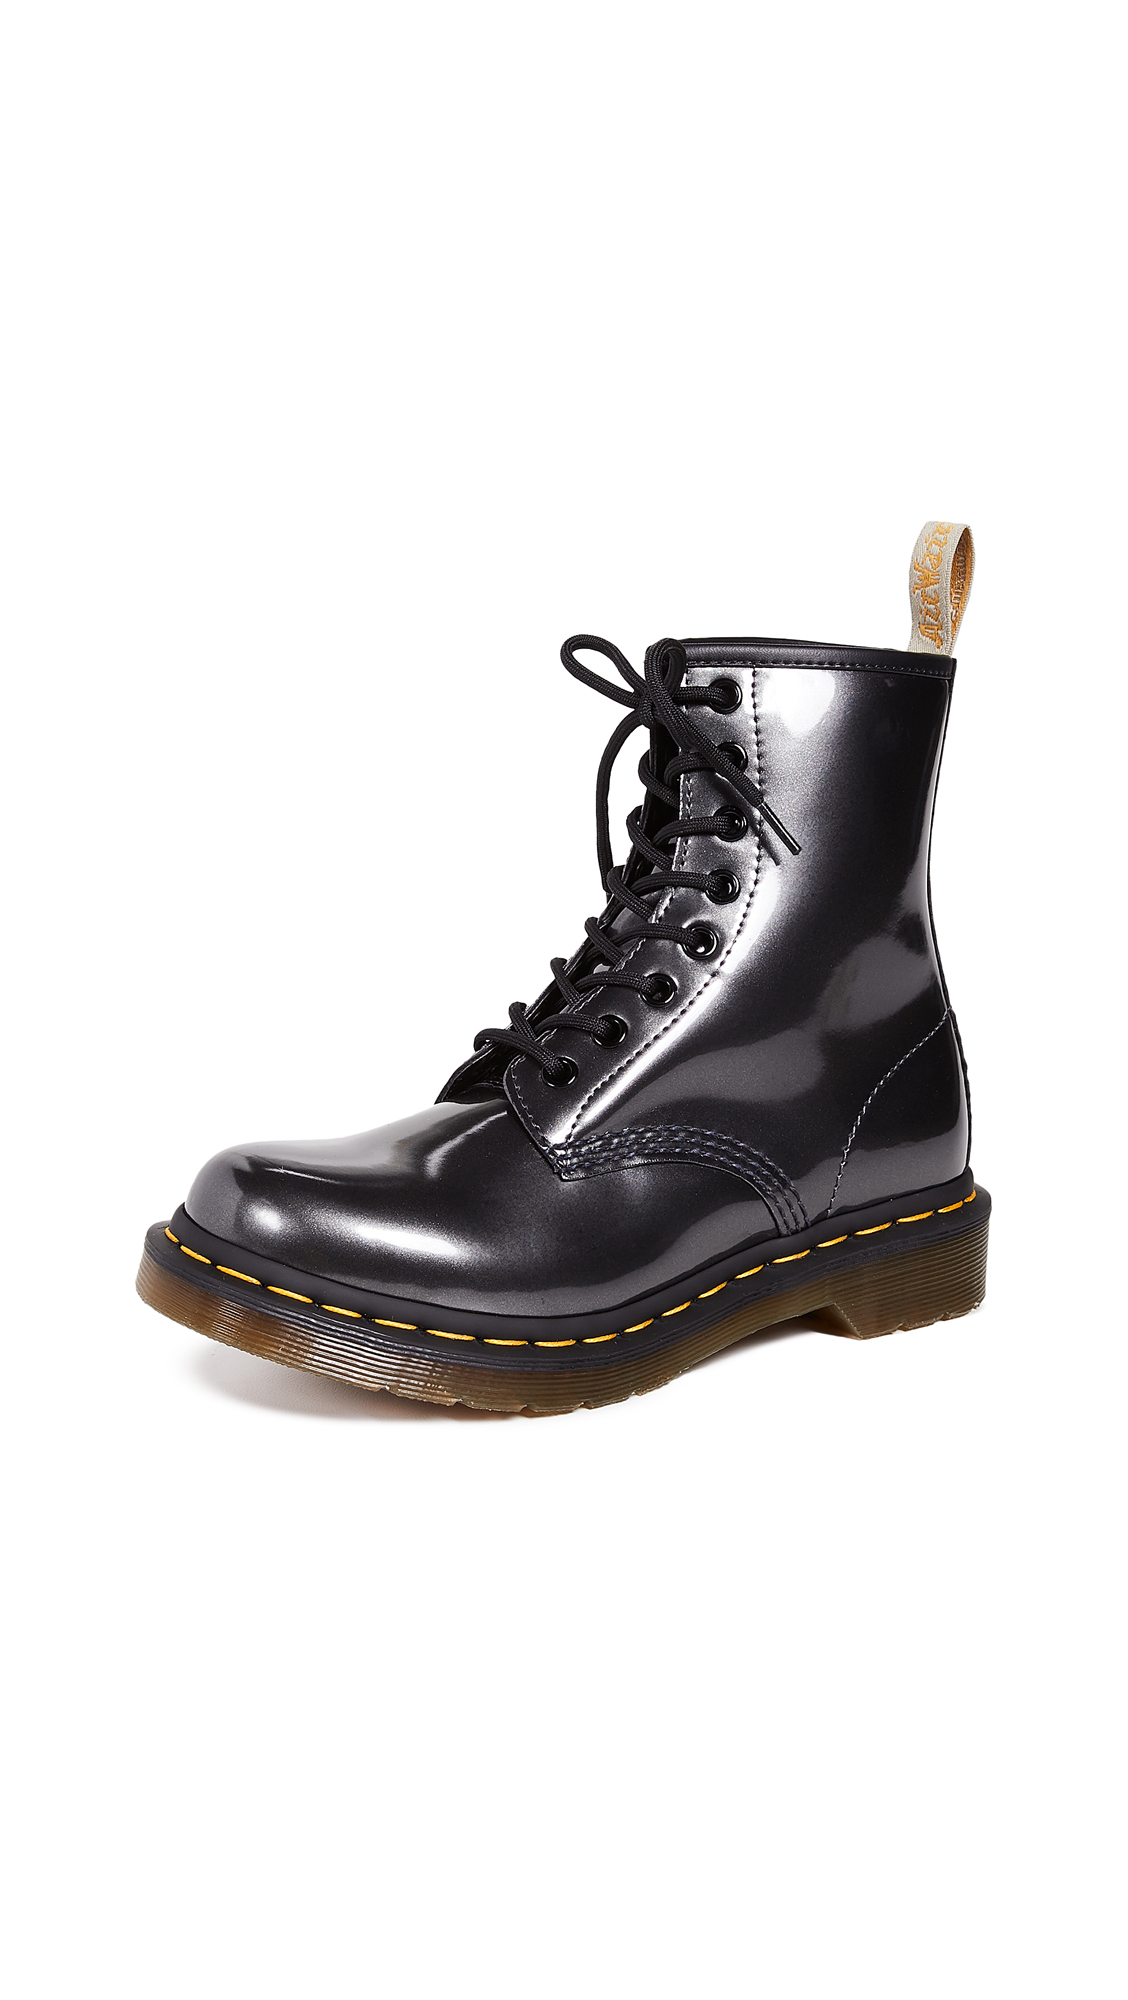 Dr. Martens 1460 Vegan Chrome 8 Eye Boots